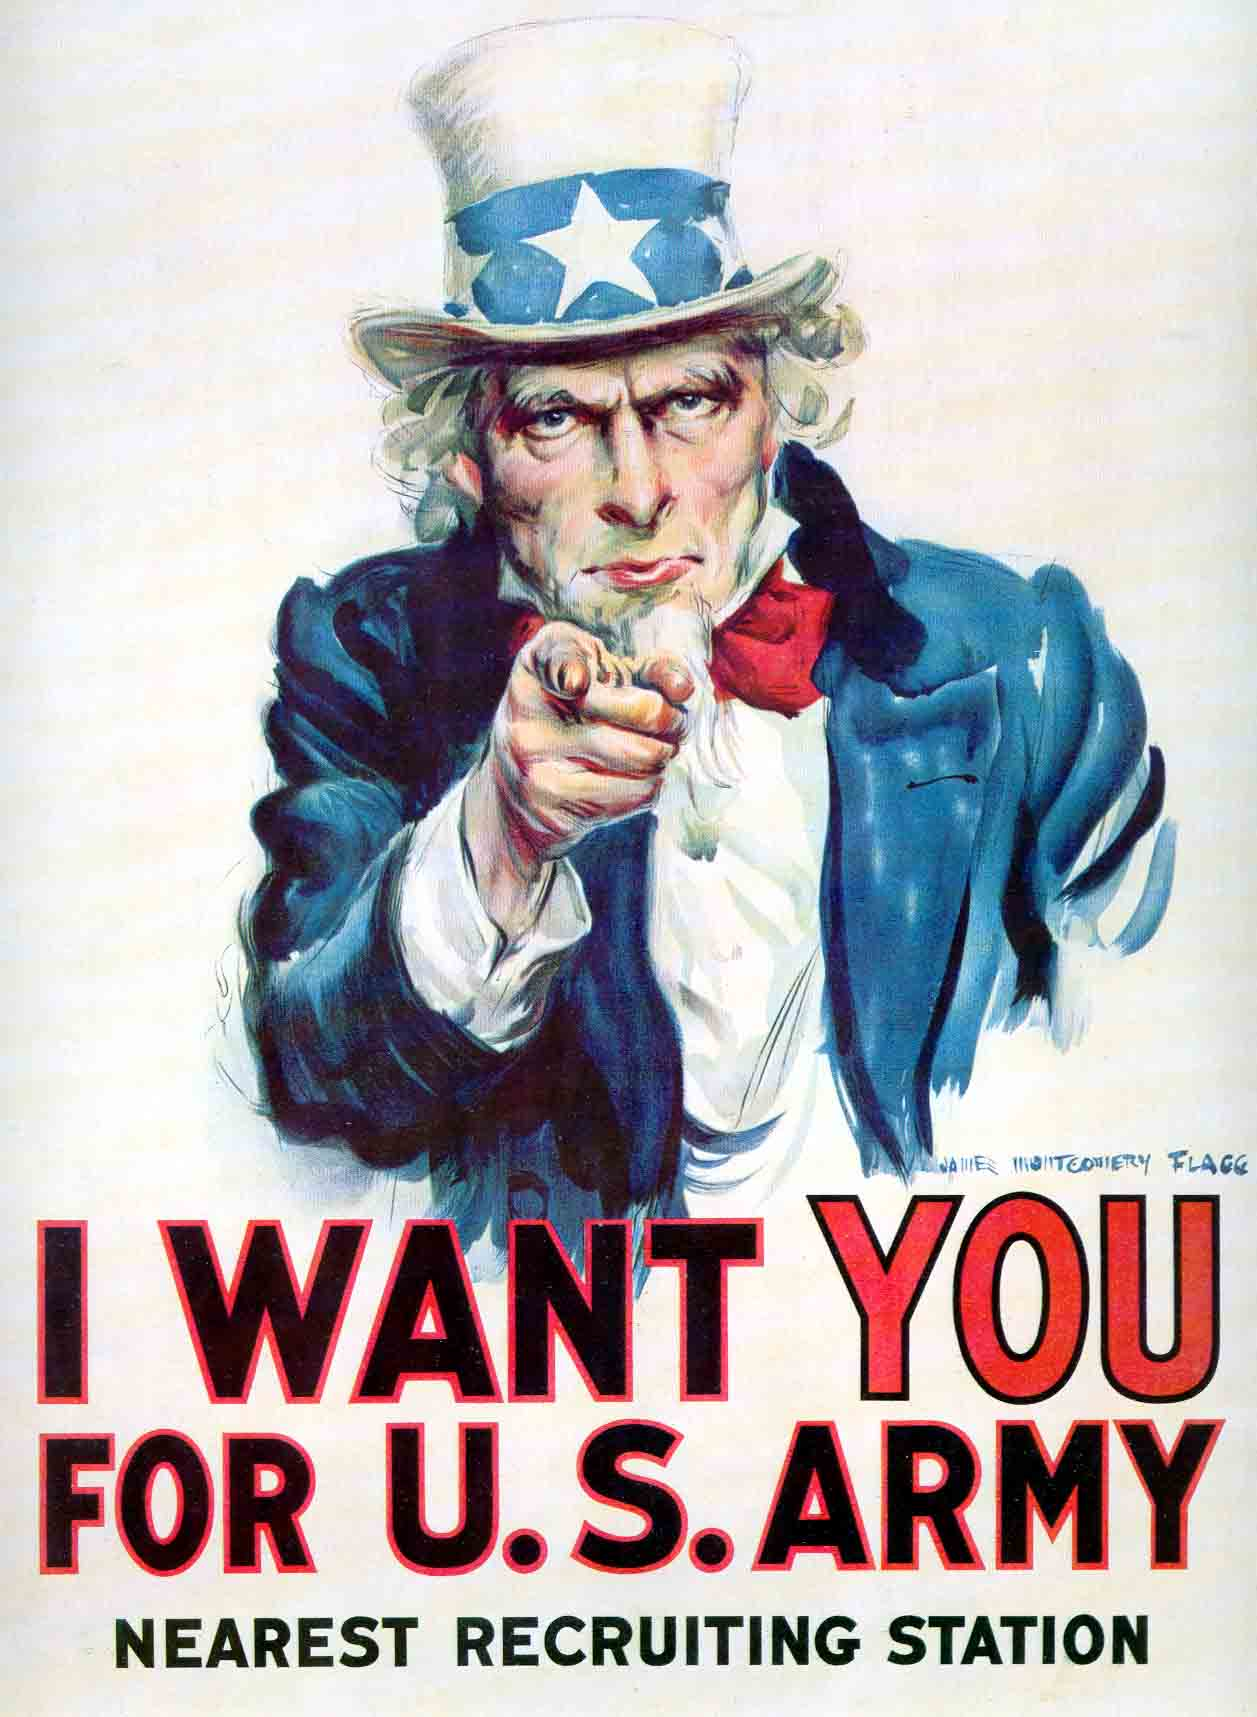 Uncle Sam Army Recruiting Poster